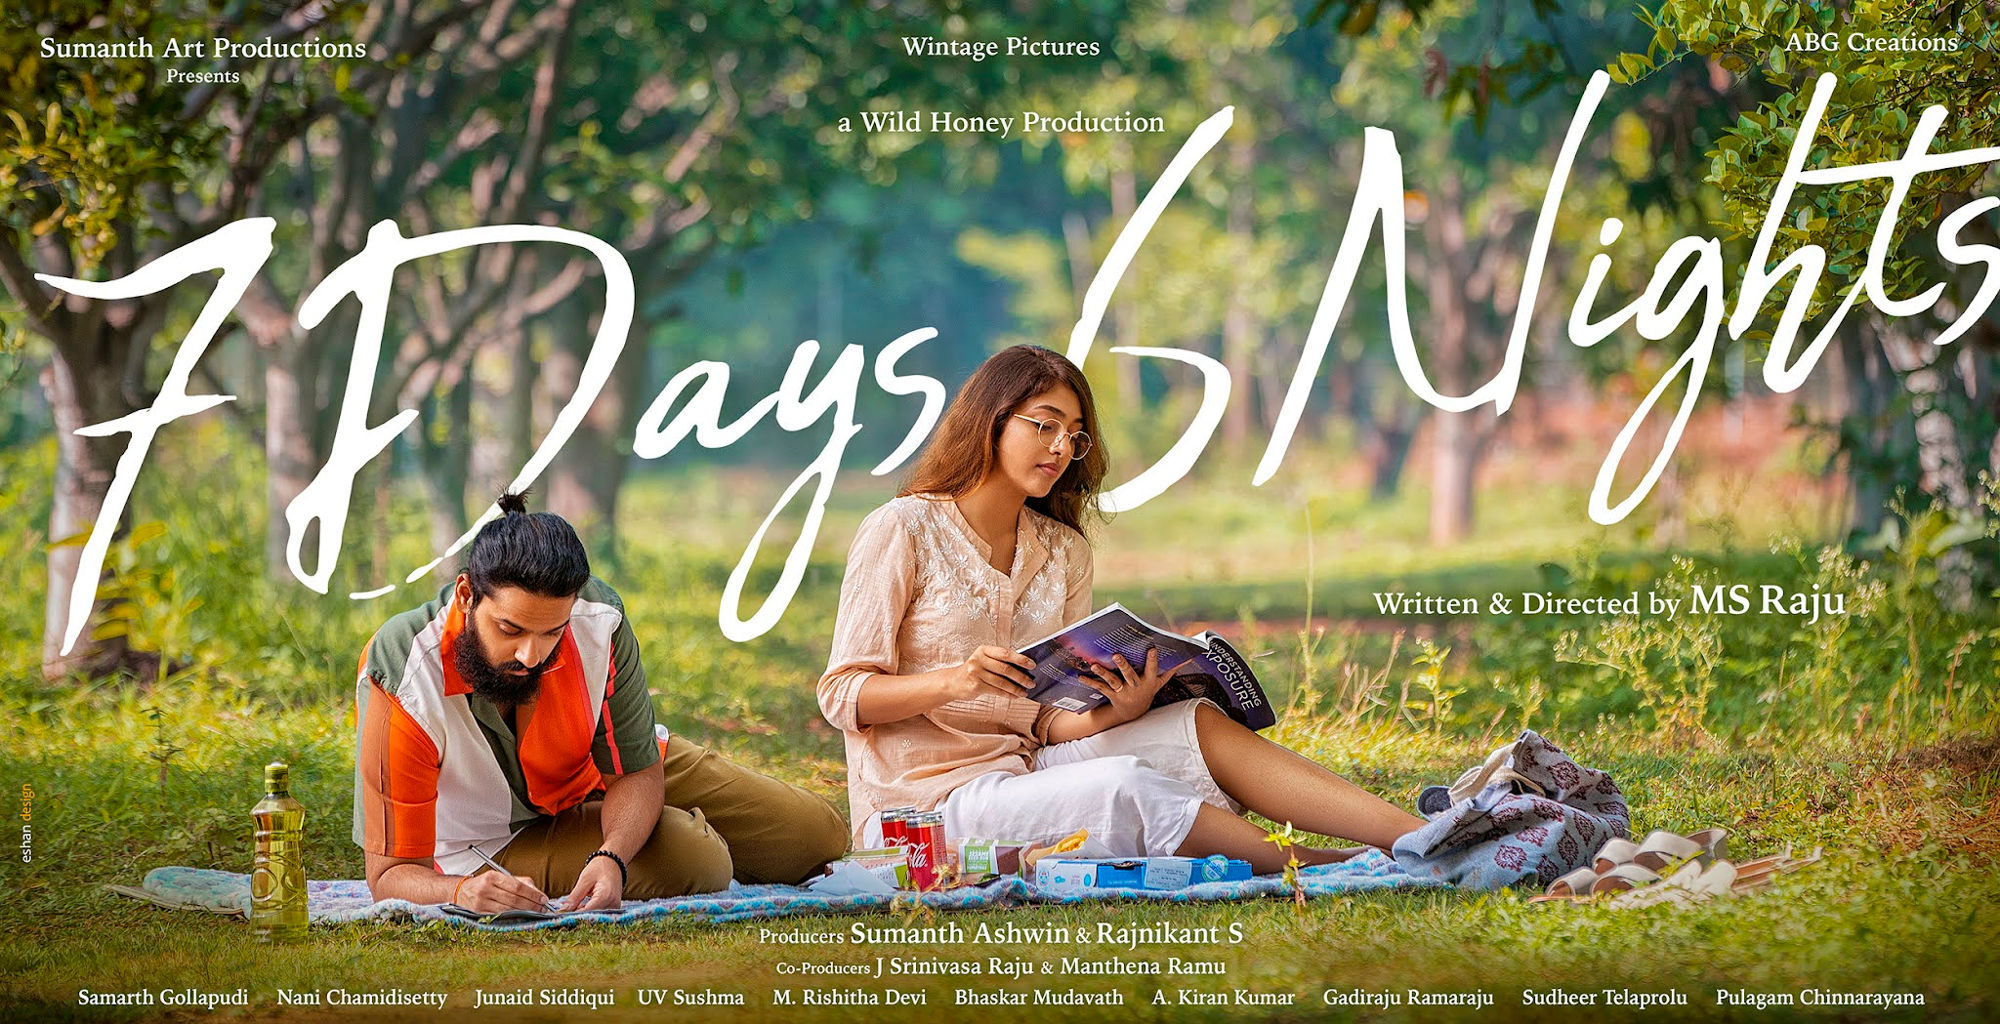 Sumanth Ashwin Mehar Chawal 7 Days 6 Nights Movie HD First Look Poster